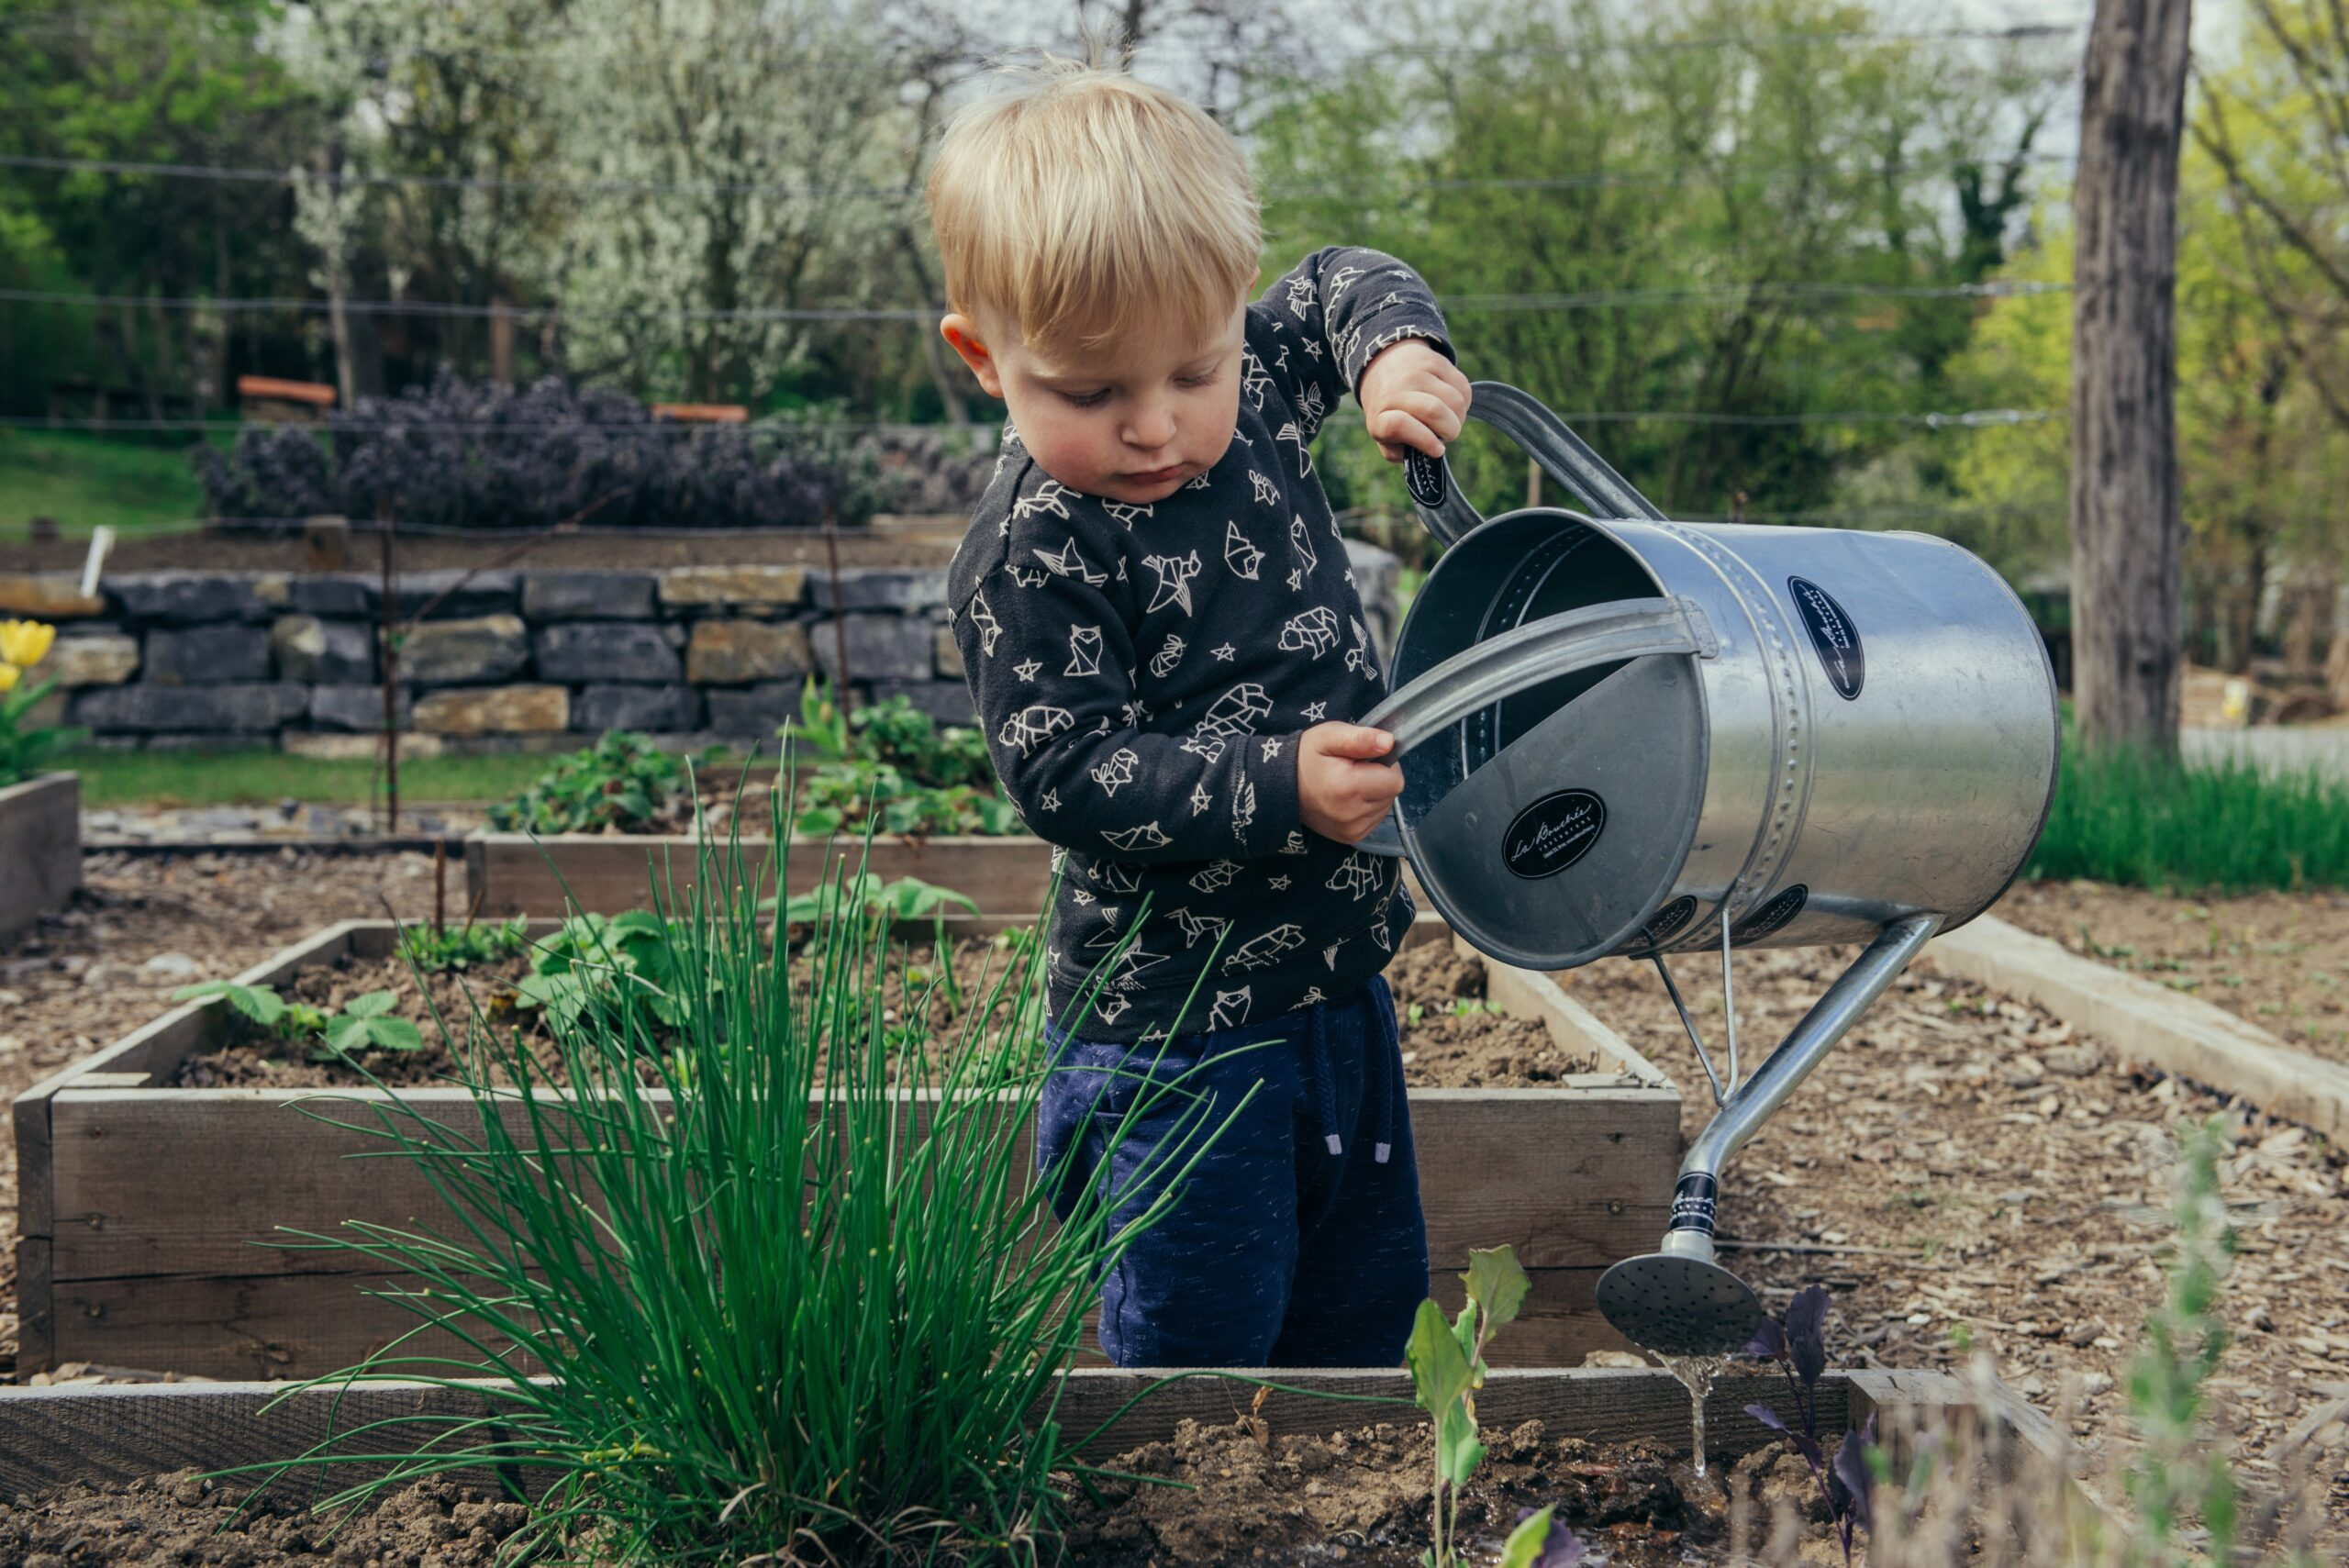 little boy with a watering can in a garden